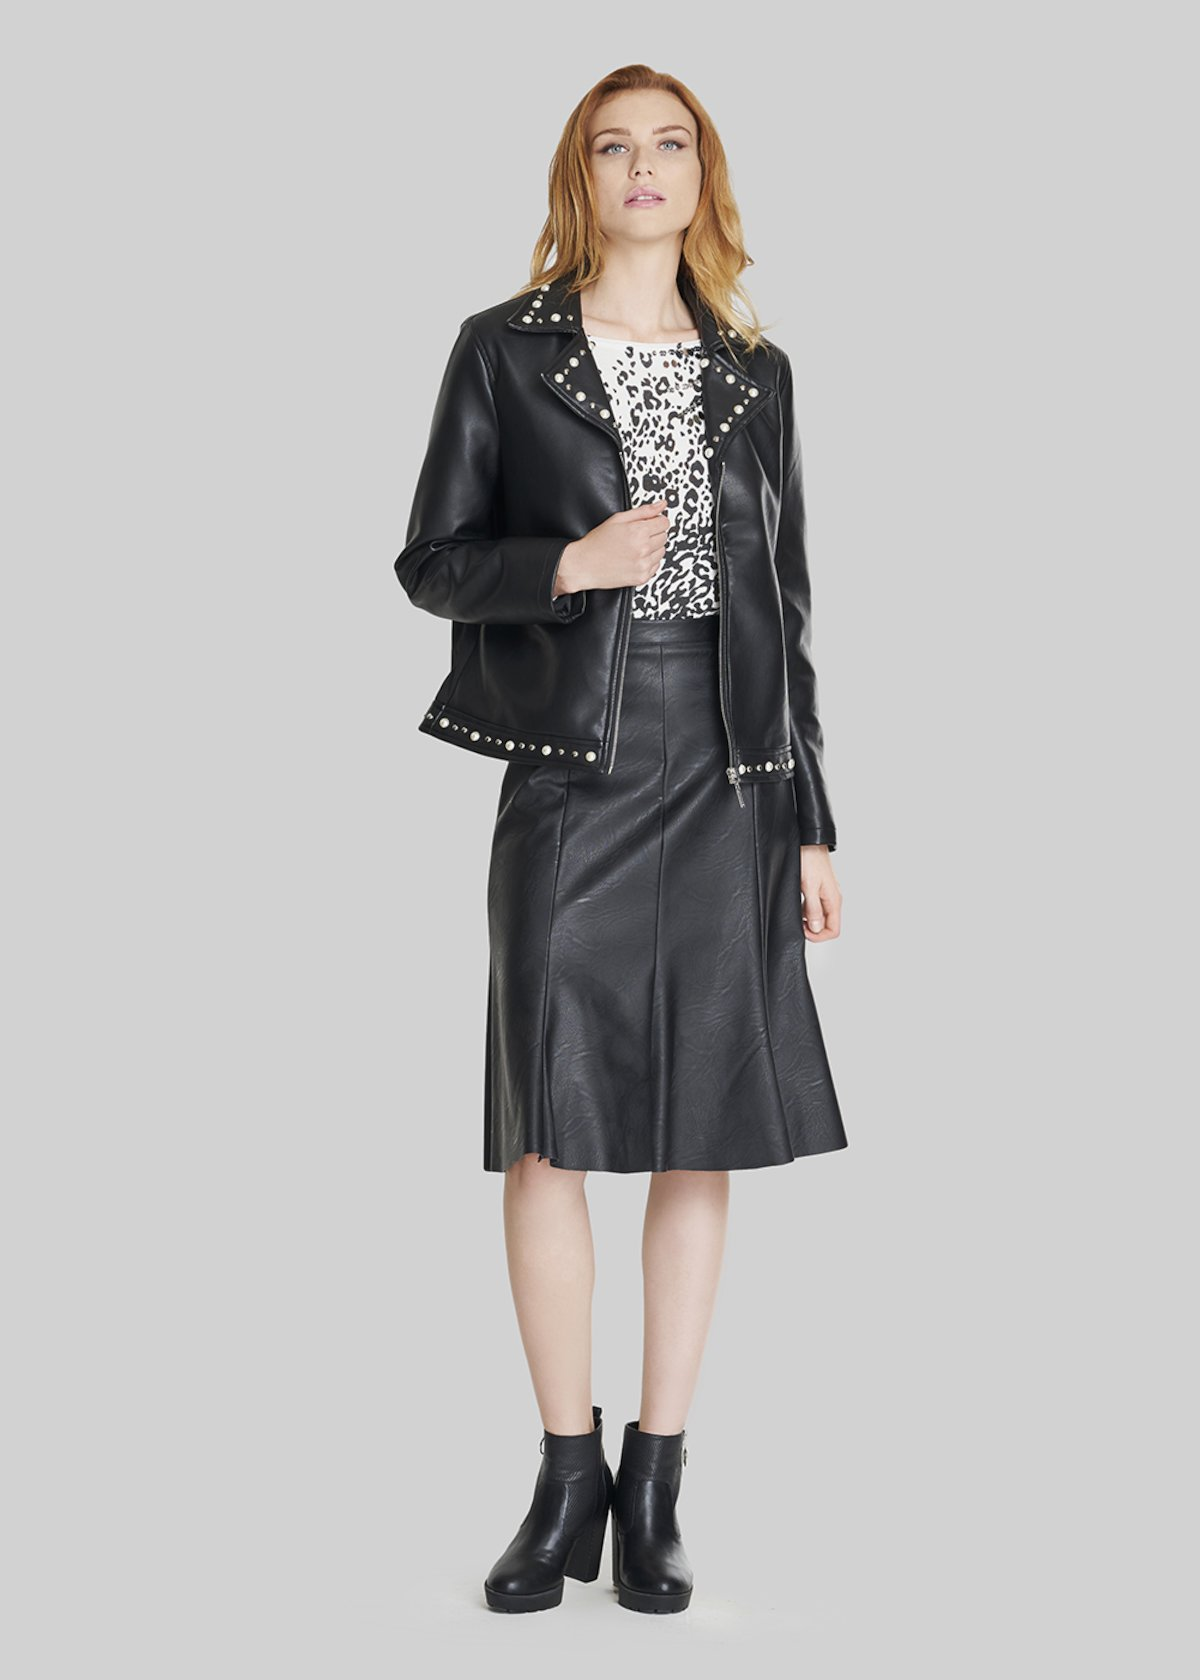 Faux-leather Geky jacket with pearls detail